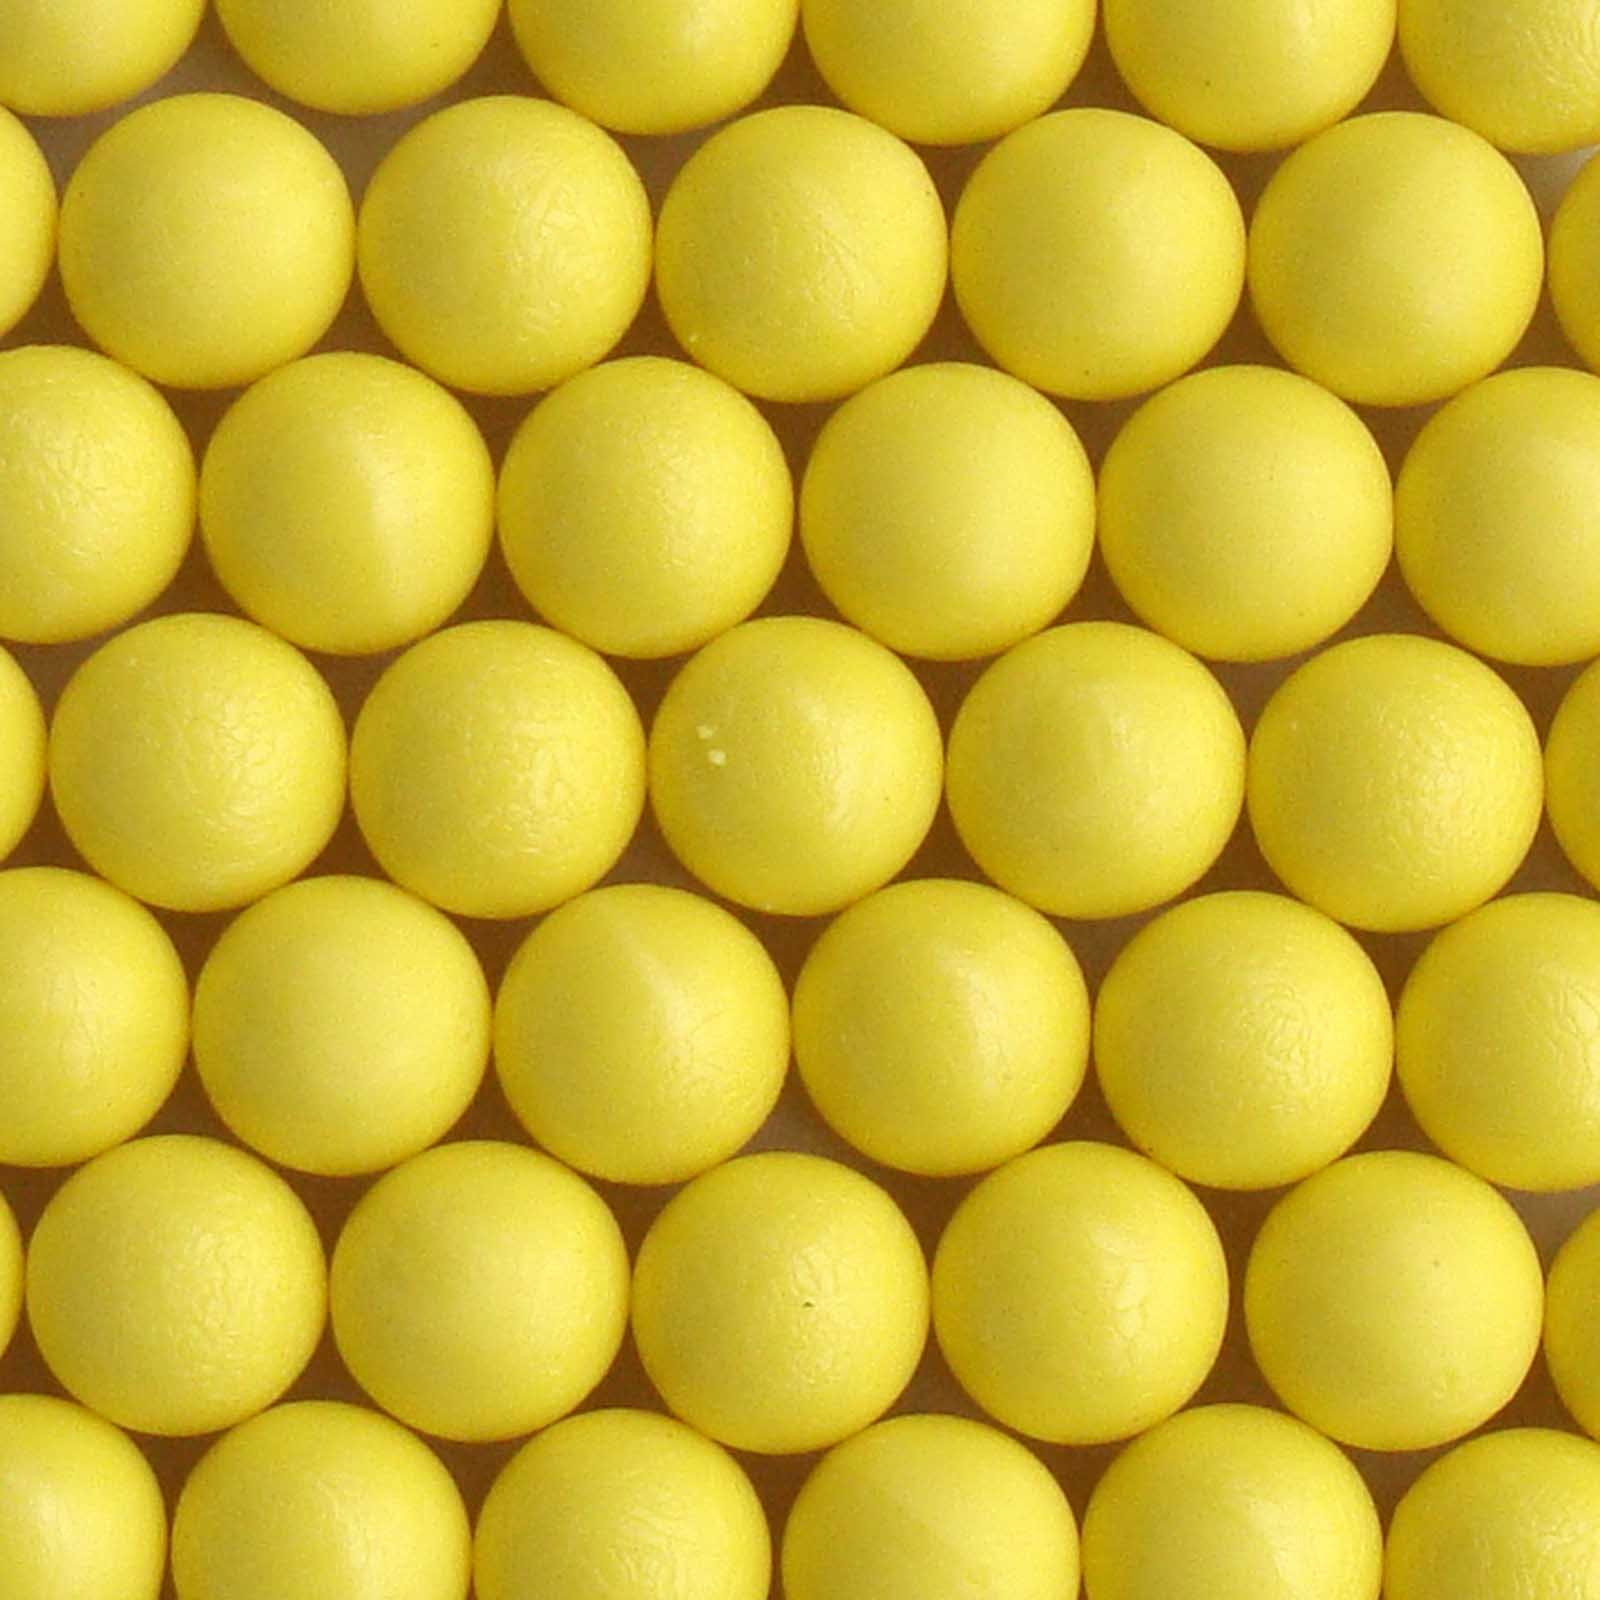 50 New .68 Cal Reusable Rubber Training Balls Paintballs Yellow Color